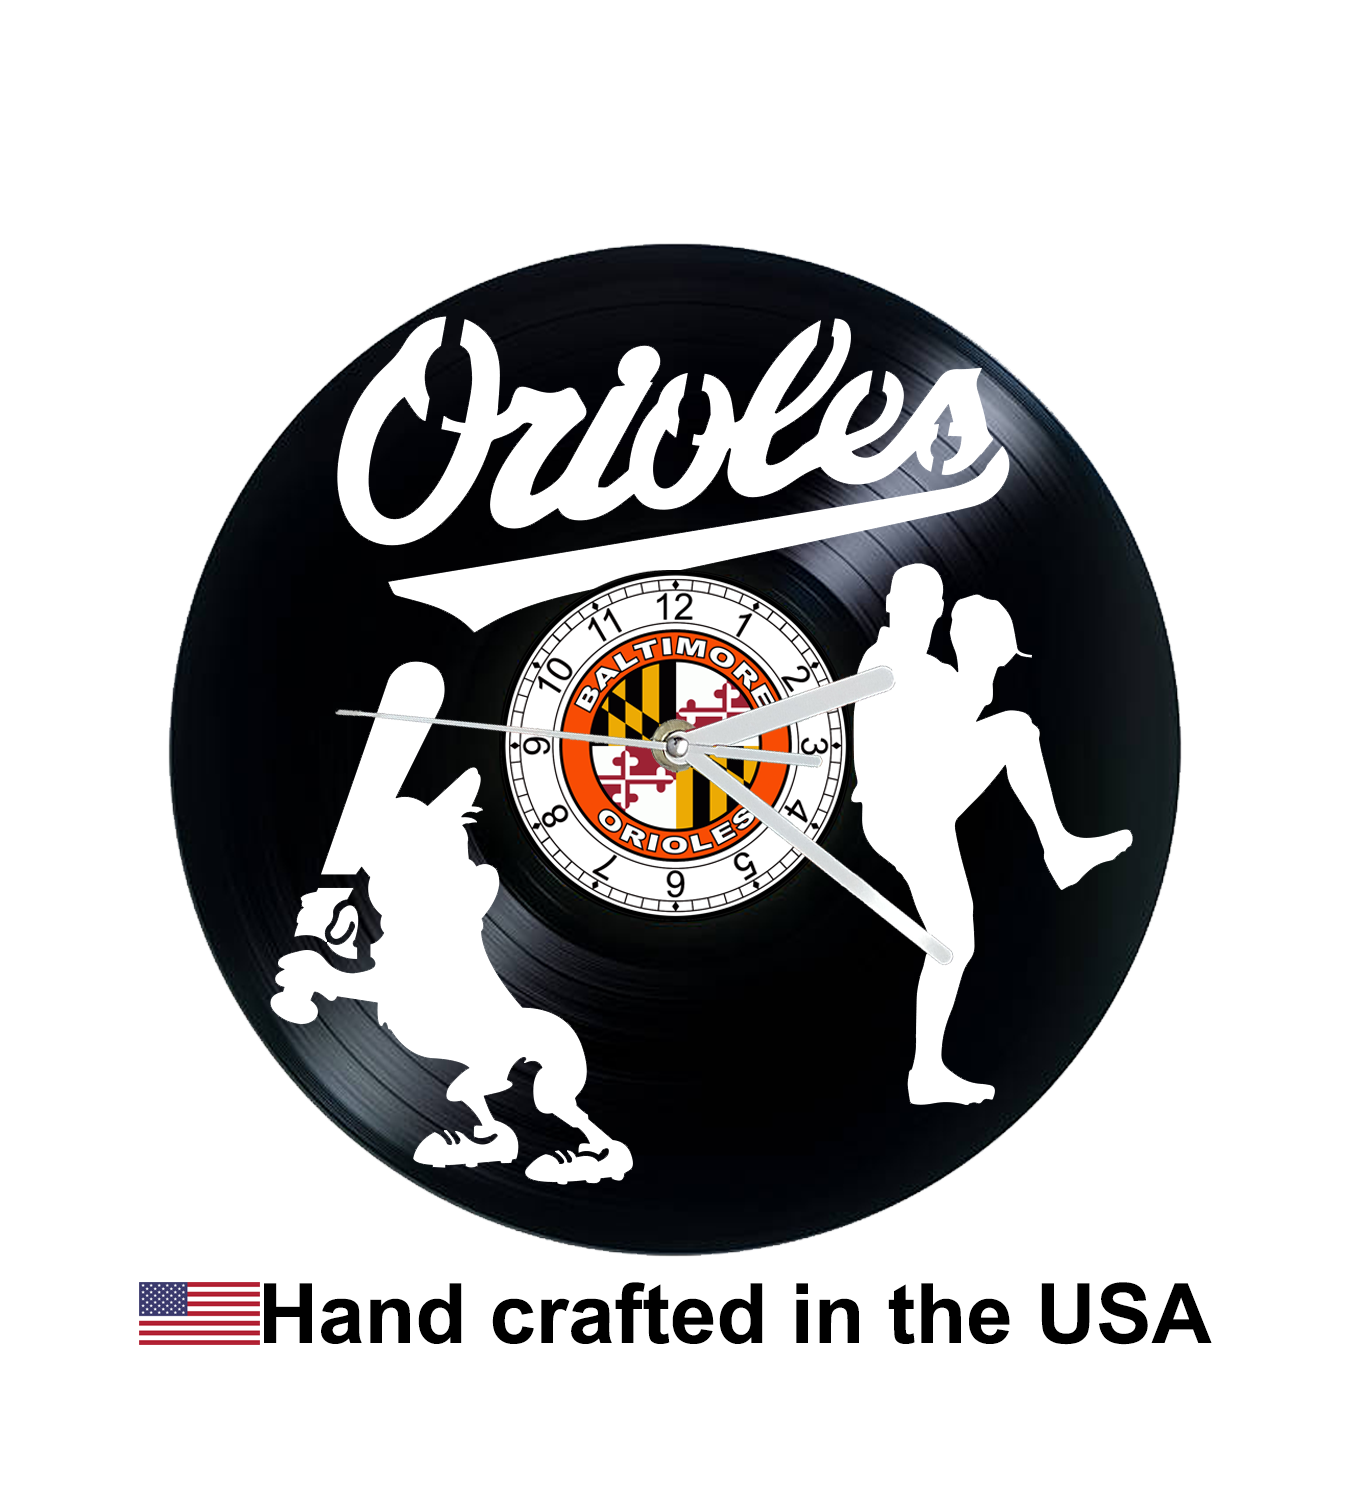 Vinyl record clock, Baltimore Orioles, Wall clock, Christmas gift, vinyl record